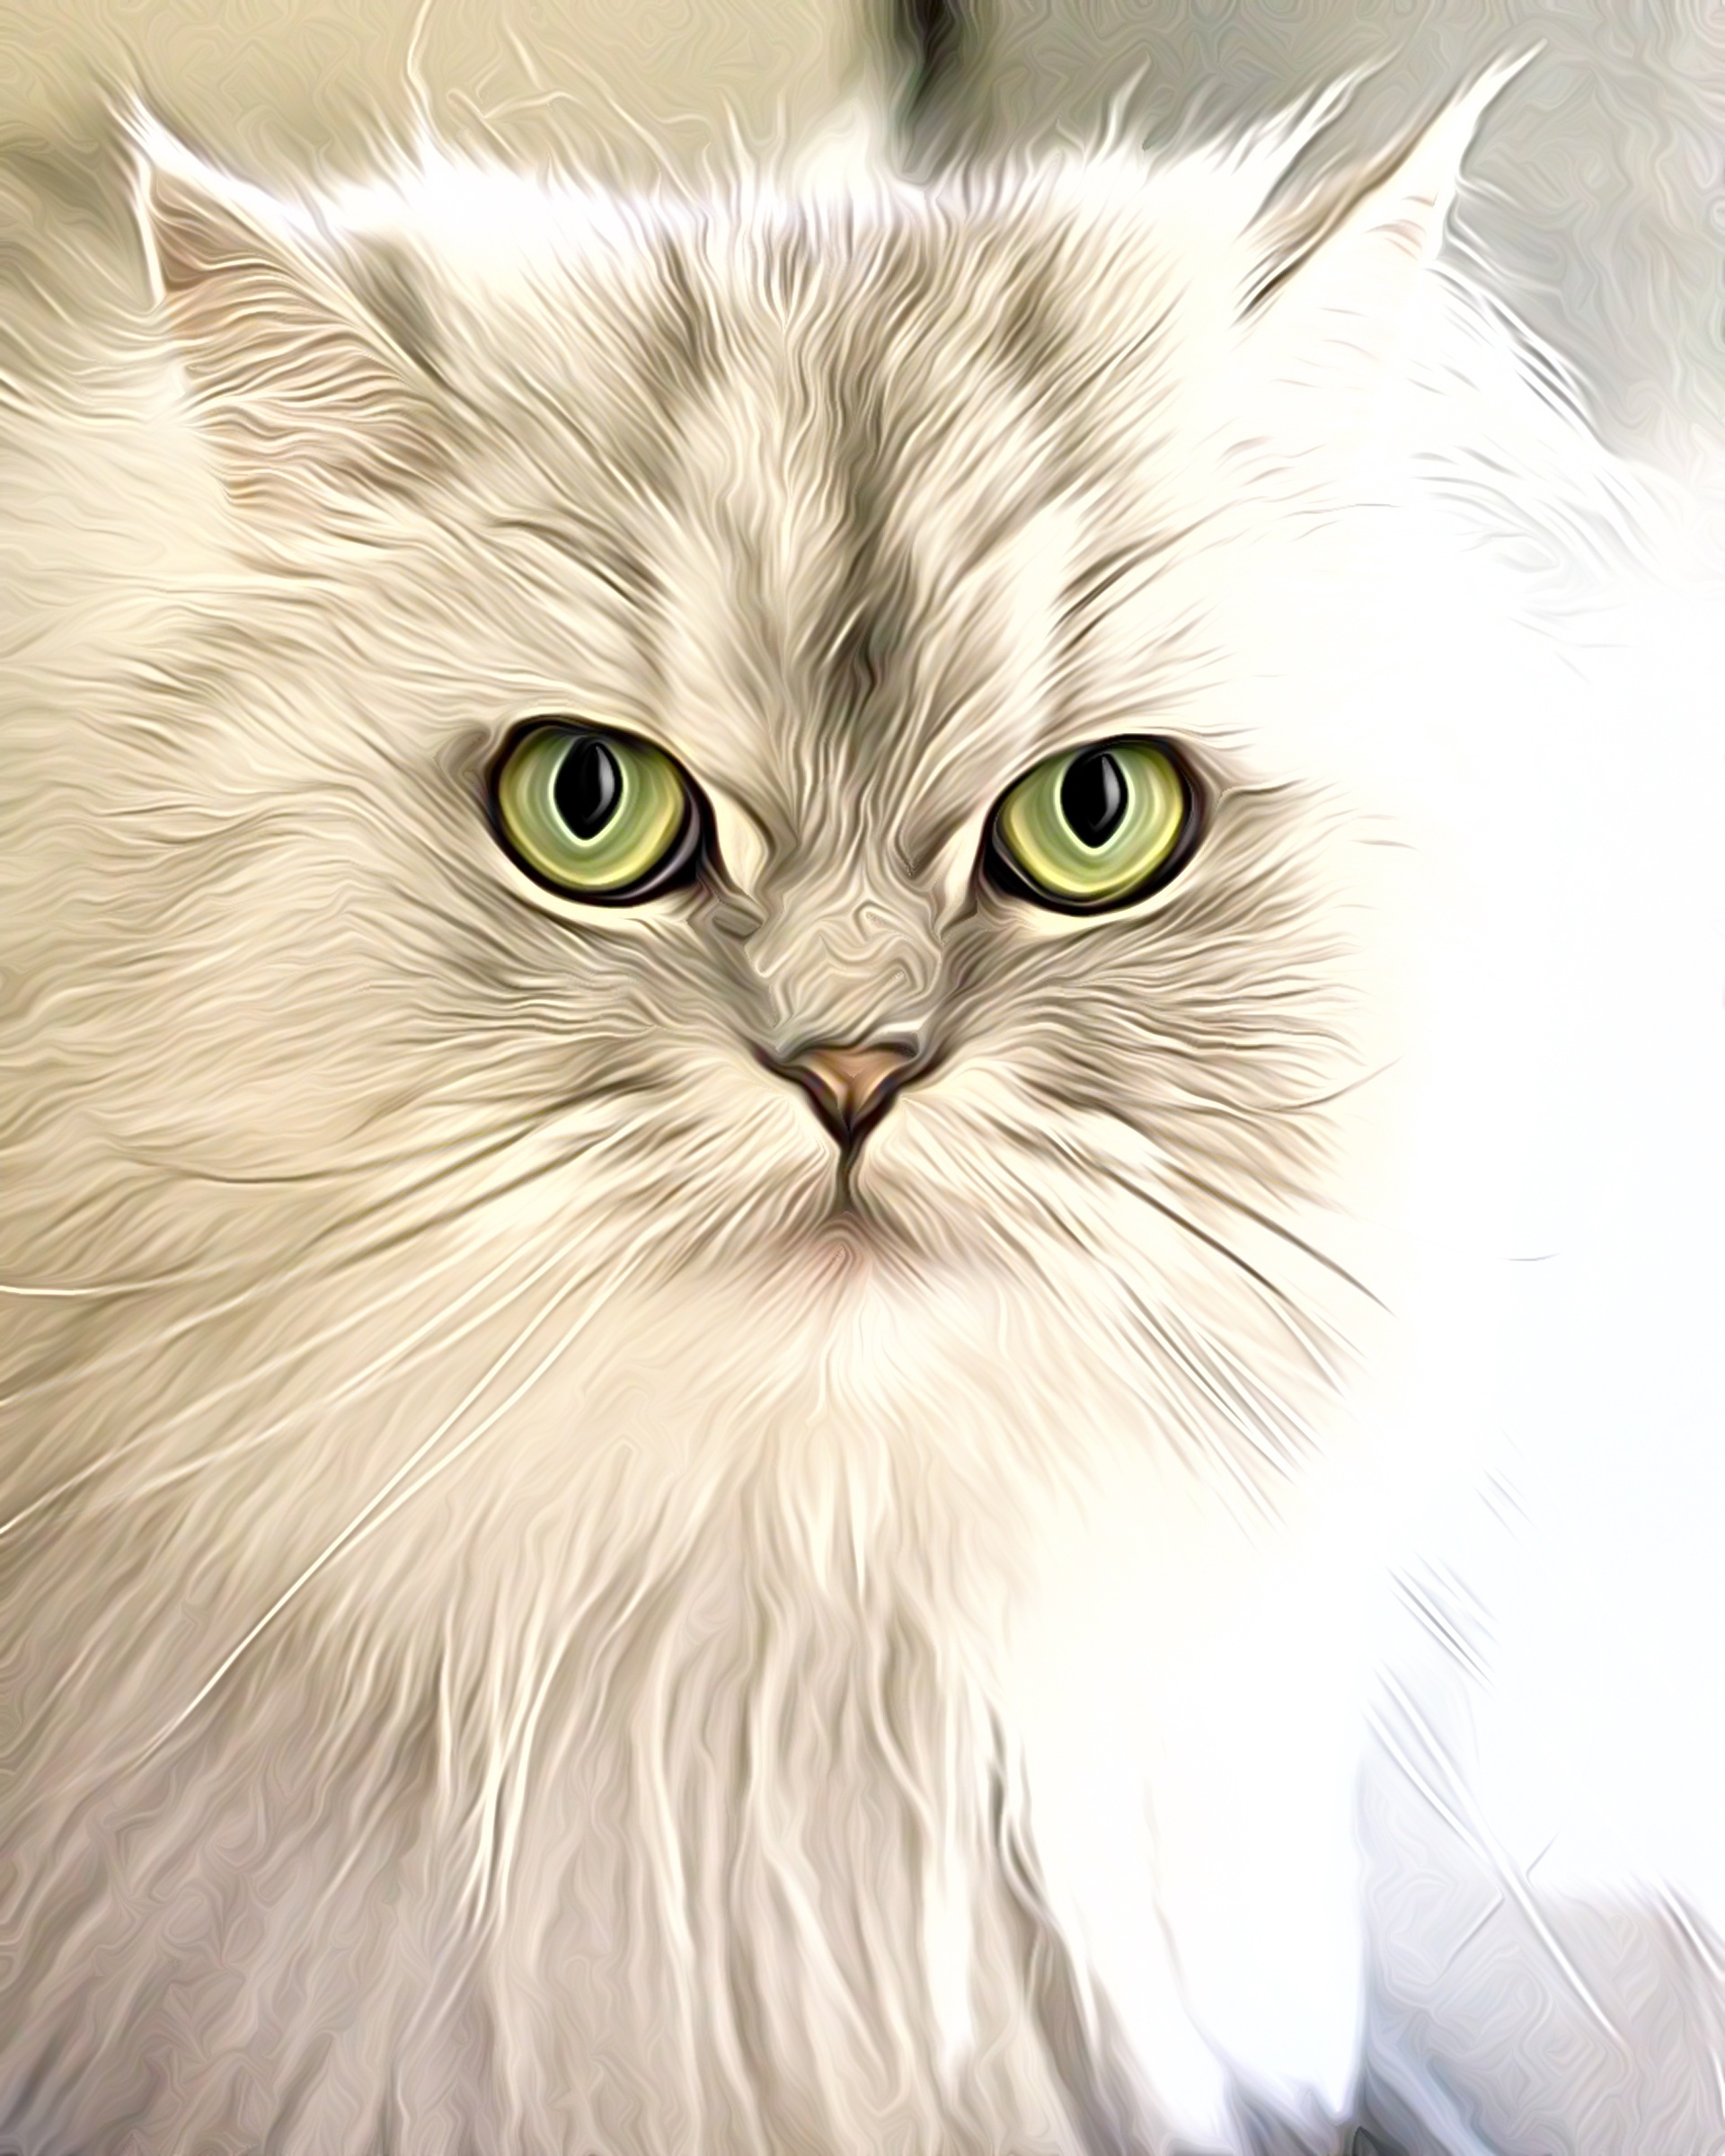 White Cat With Green Eyes Graphics Free Image